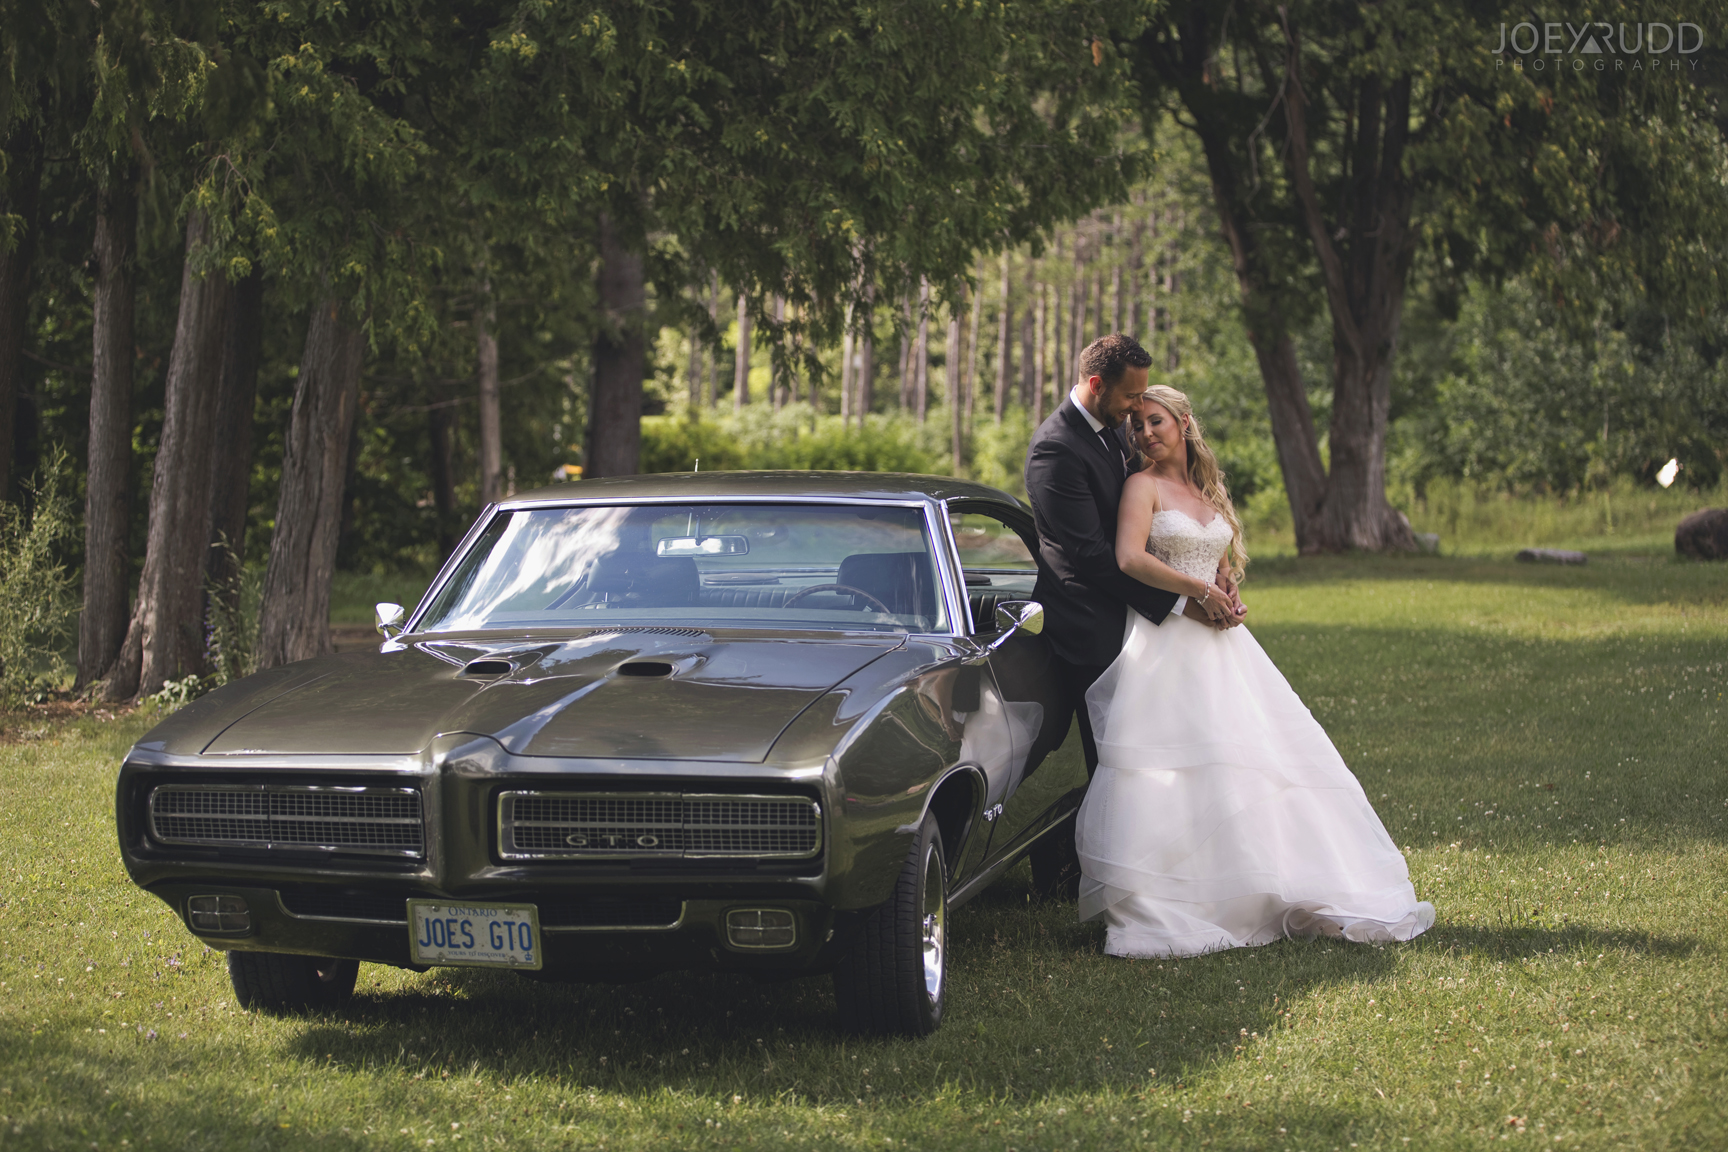 Calabogie Wedding at Barnet Park by Ottawa Wedding Photographer Joey Rudd Photography Vintage Wedding Car